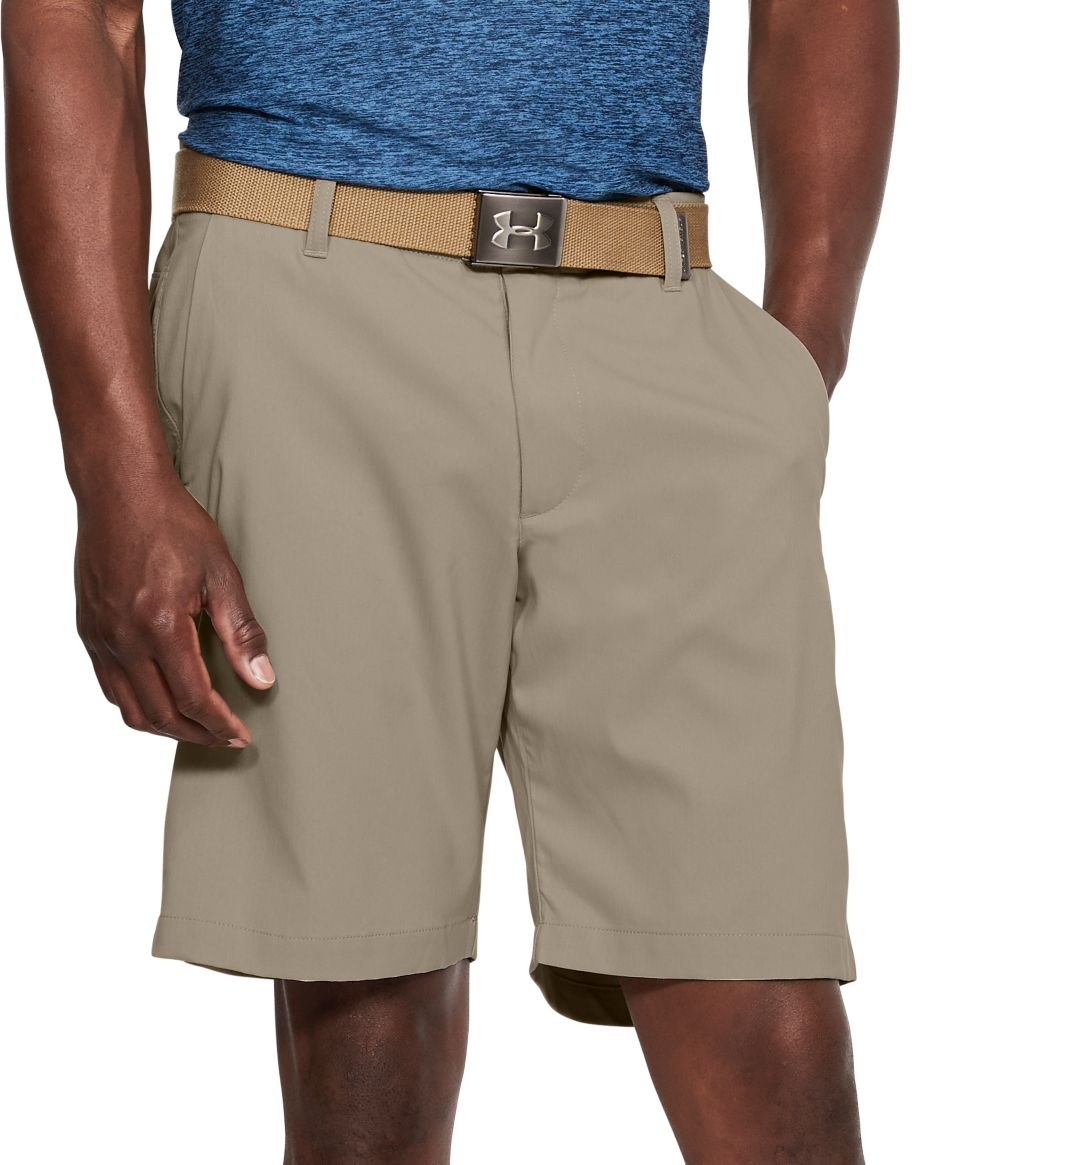 adidas golf shorts 9 inch inseam